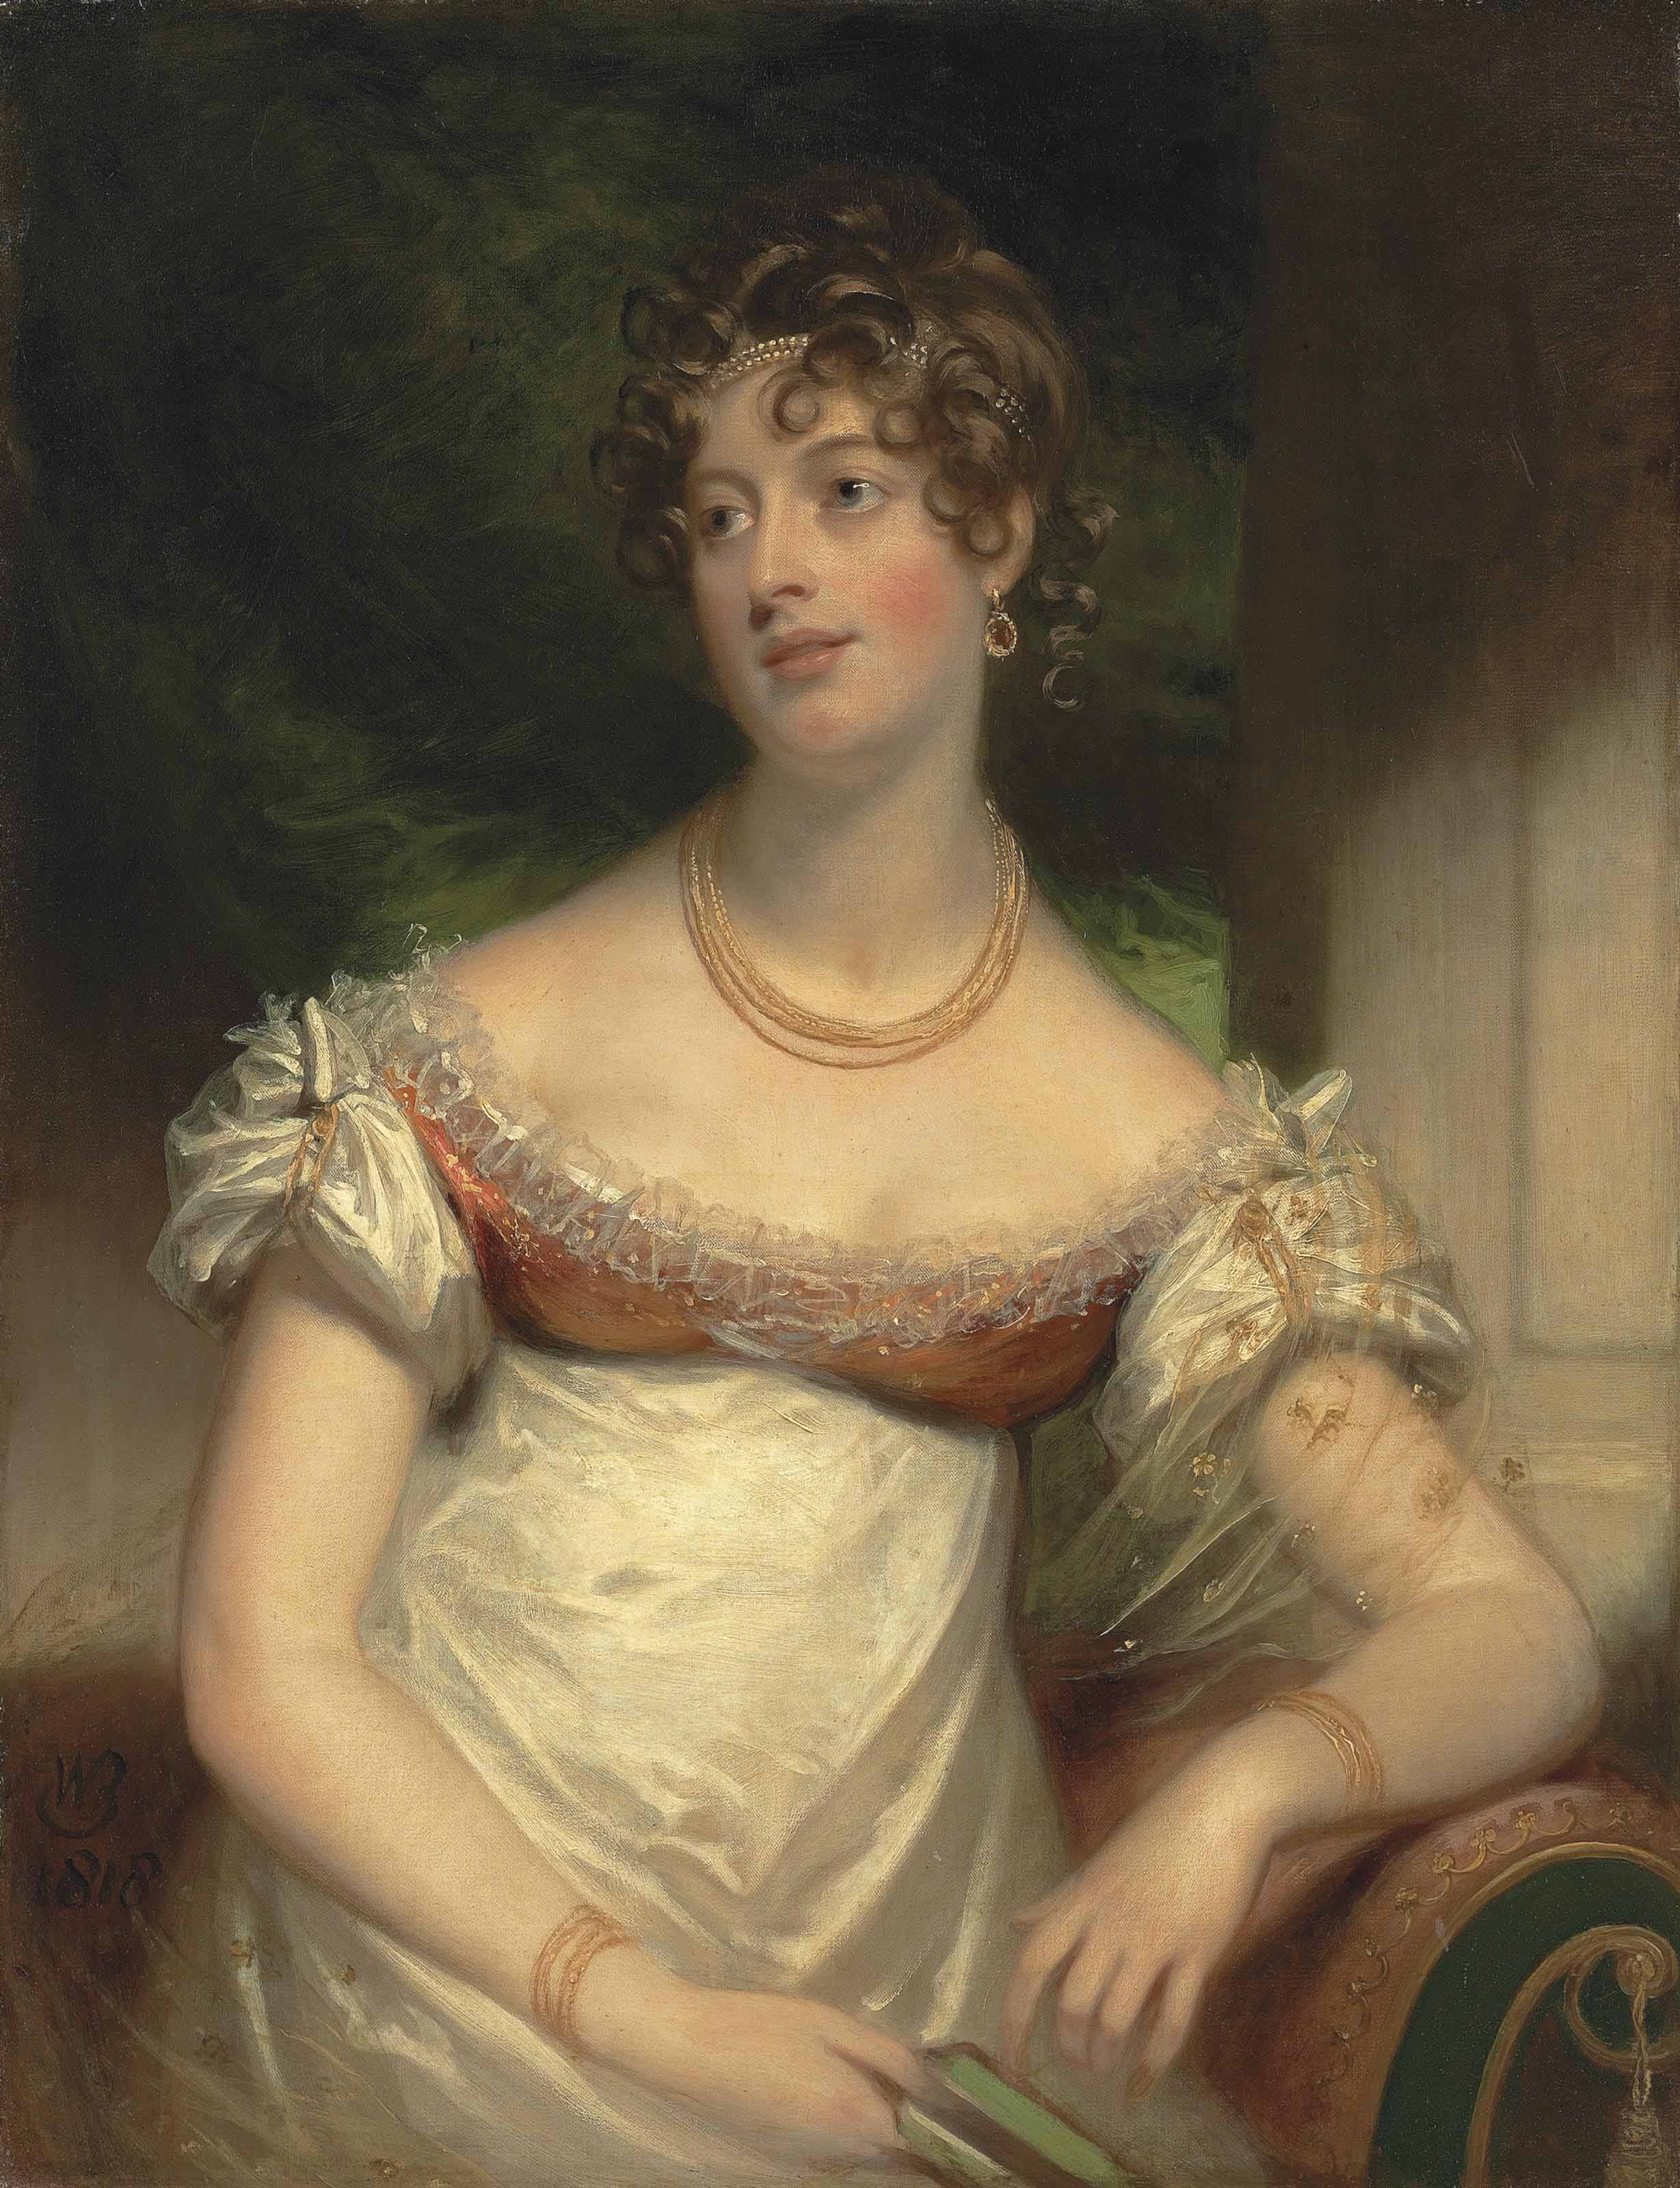 Portrait of Miss Anne Lee, half-length, in a white dress, with a gold necklace and bracelets, pearls in her hair, a book in her right hand, in an interior